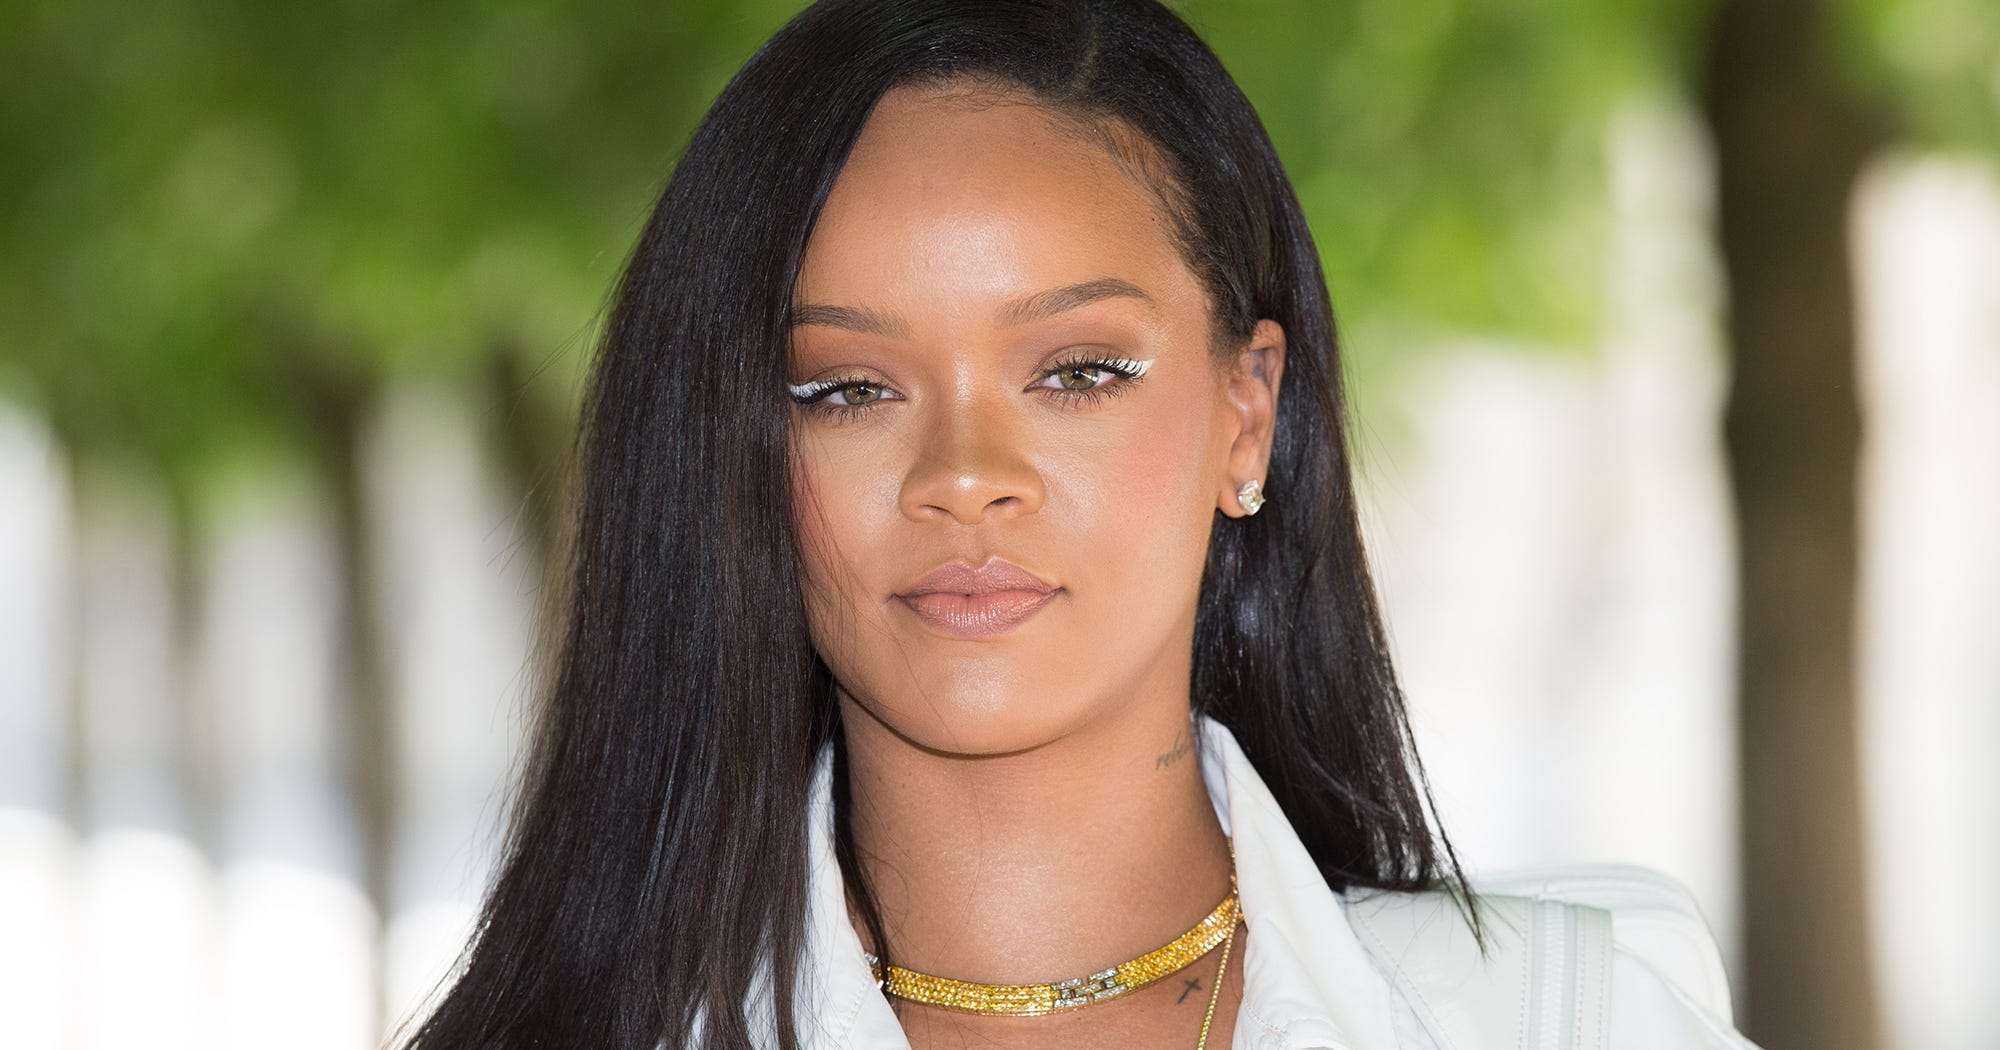 Rihanna's Makeup Artist Swears By These Cheap Skin-Care Products